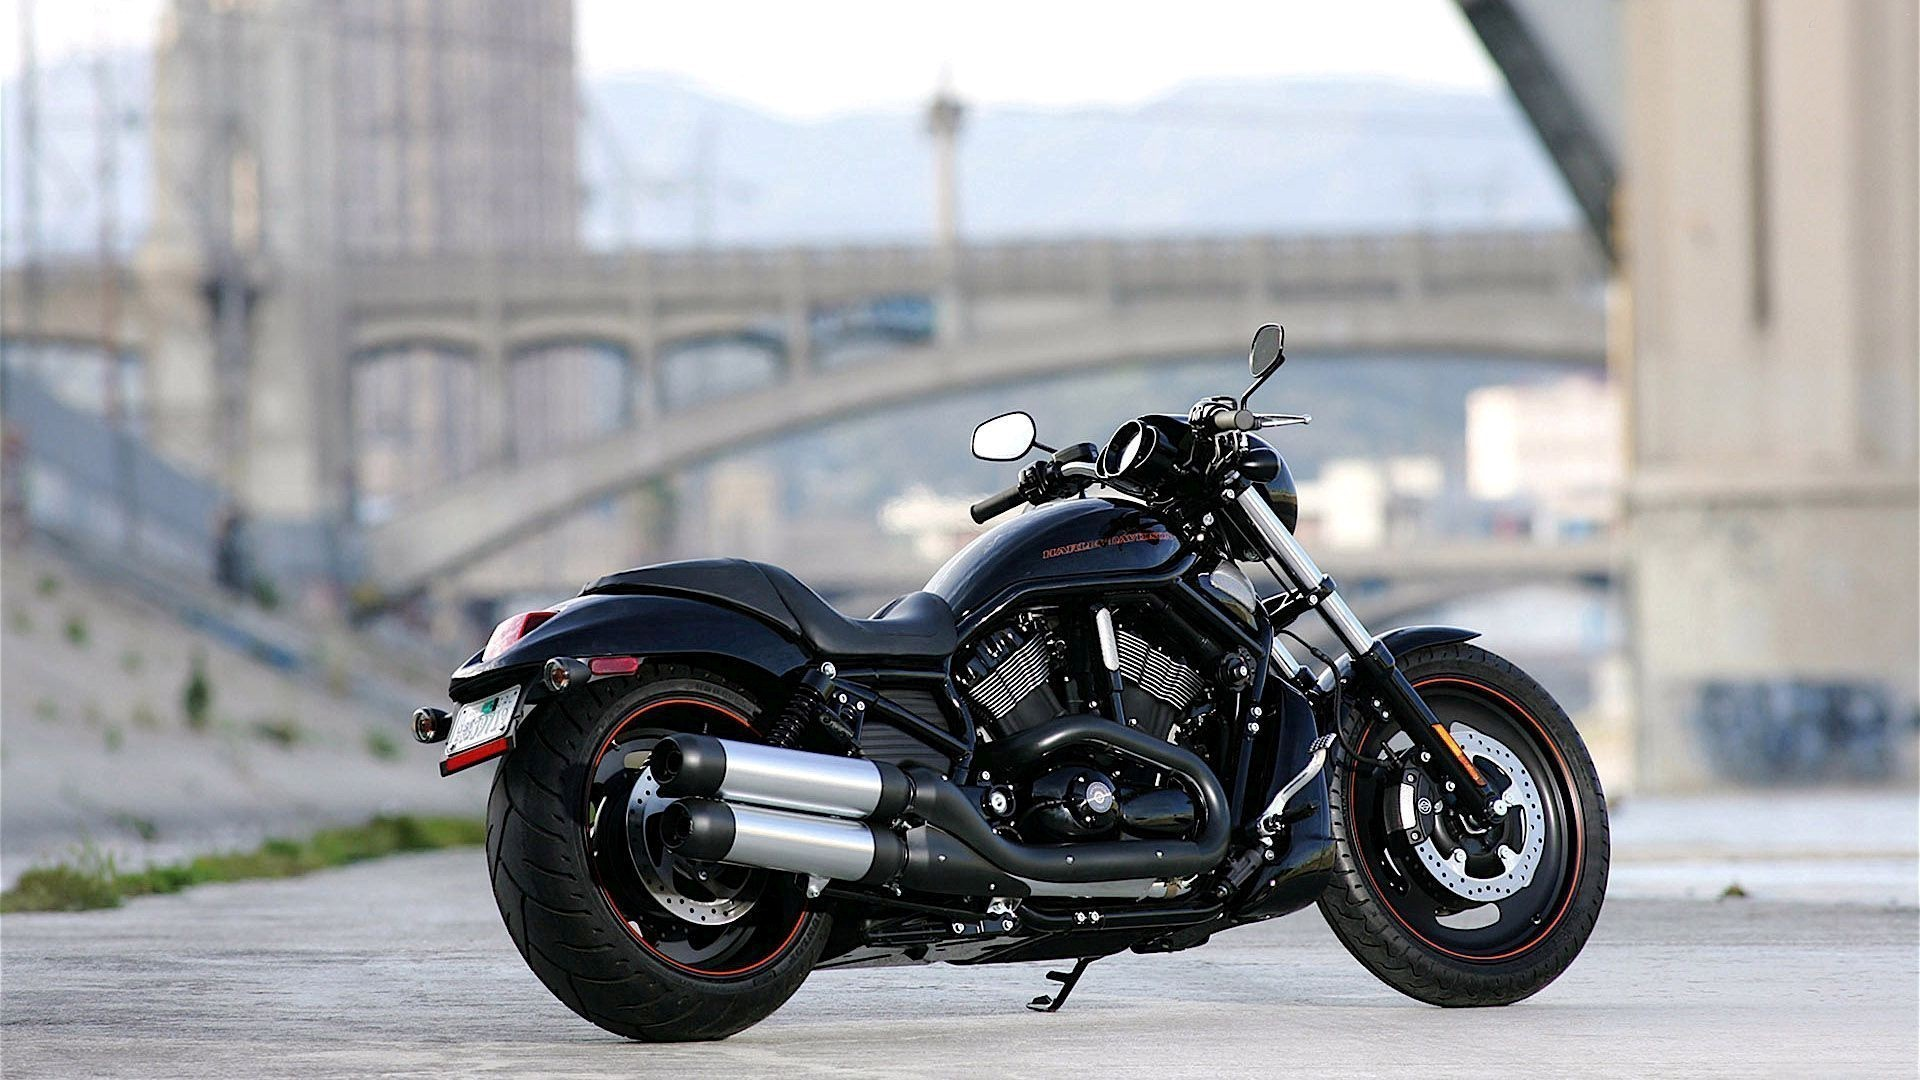 1920x1080 8028 Views 3224 Download New Harley Davidson on Road HD Photo Background